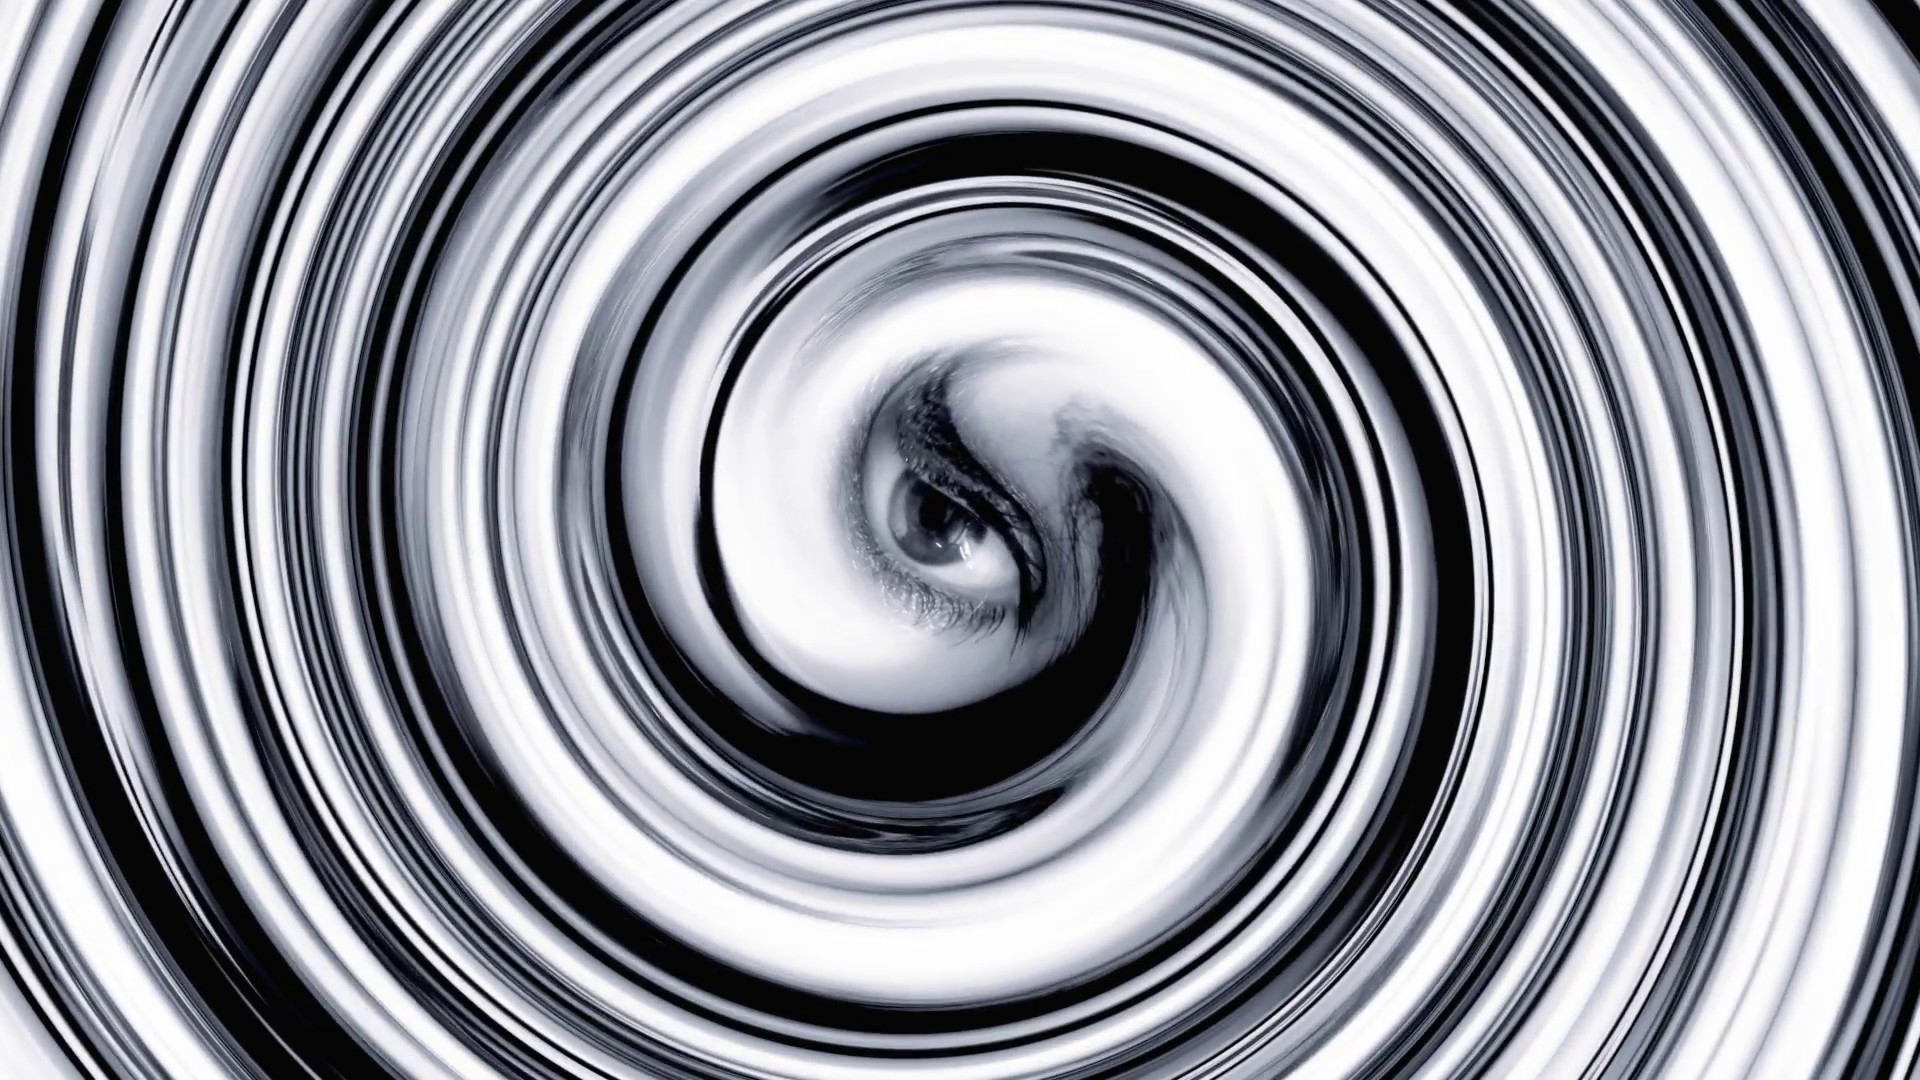 Eye hypnosis vortex. The whirling hypnotic eye of a woman at the center of  a spiral. Bizarre noir surrealist shot. Stock Video Footage – VideoBlocks